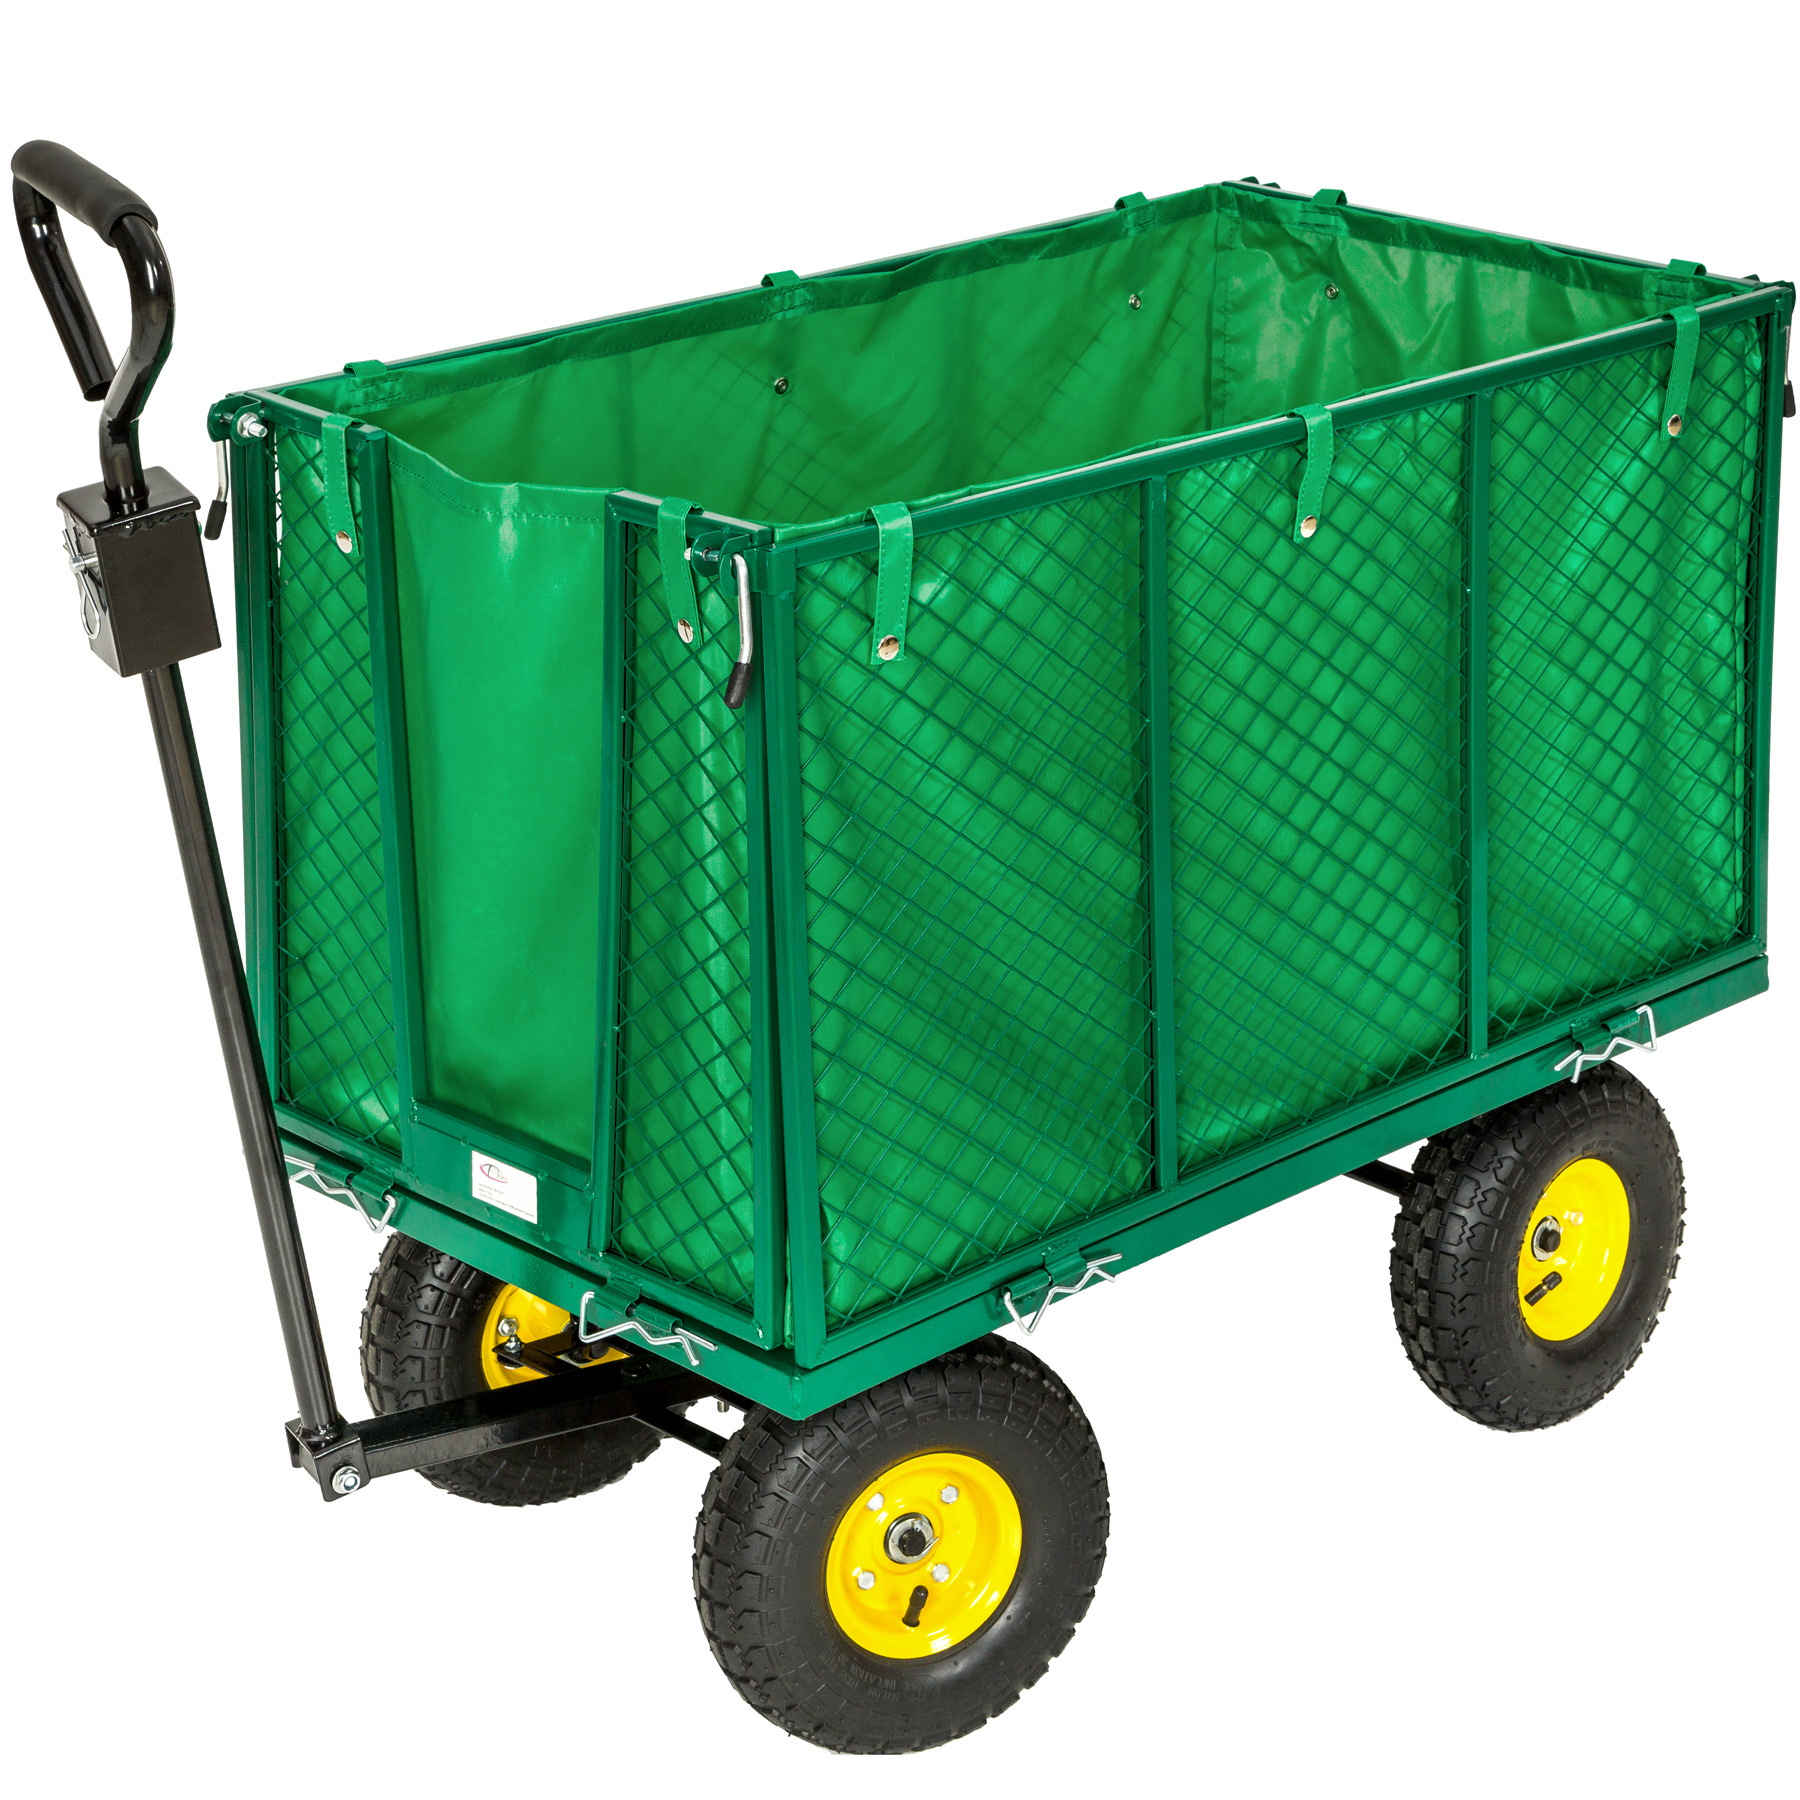 xxl heavy duty wheelbarrow garden mesh cart trolley. Black Bedroom Furniture Sets. Home Design Ideas